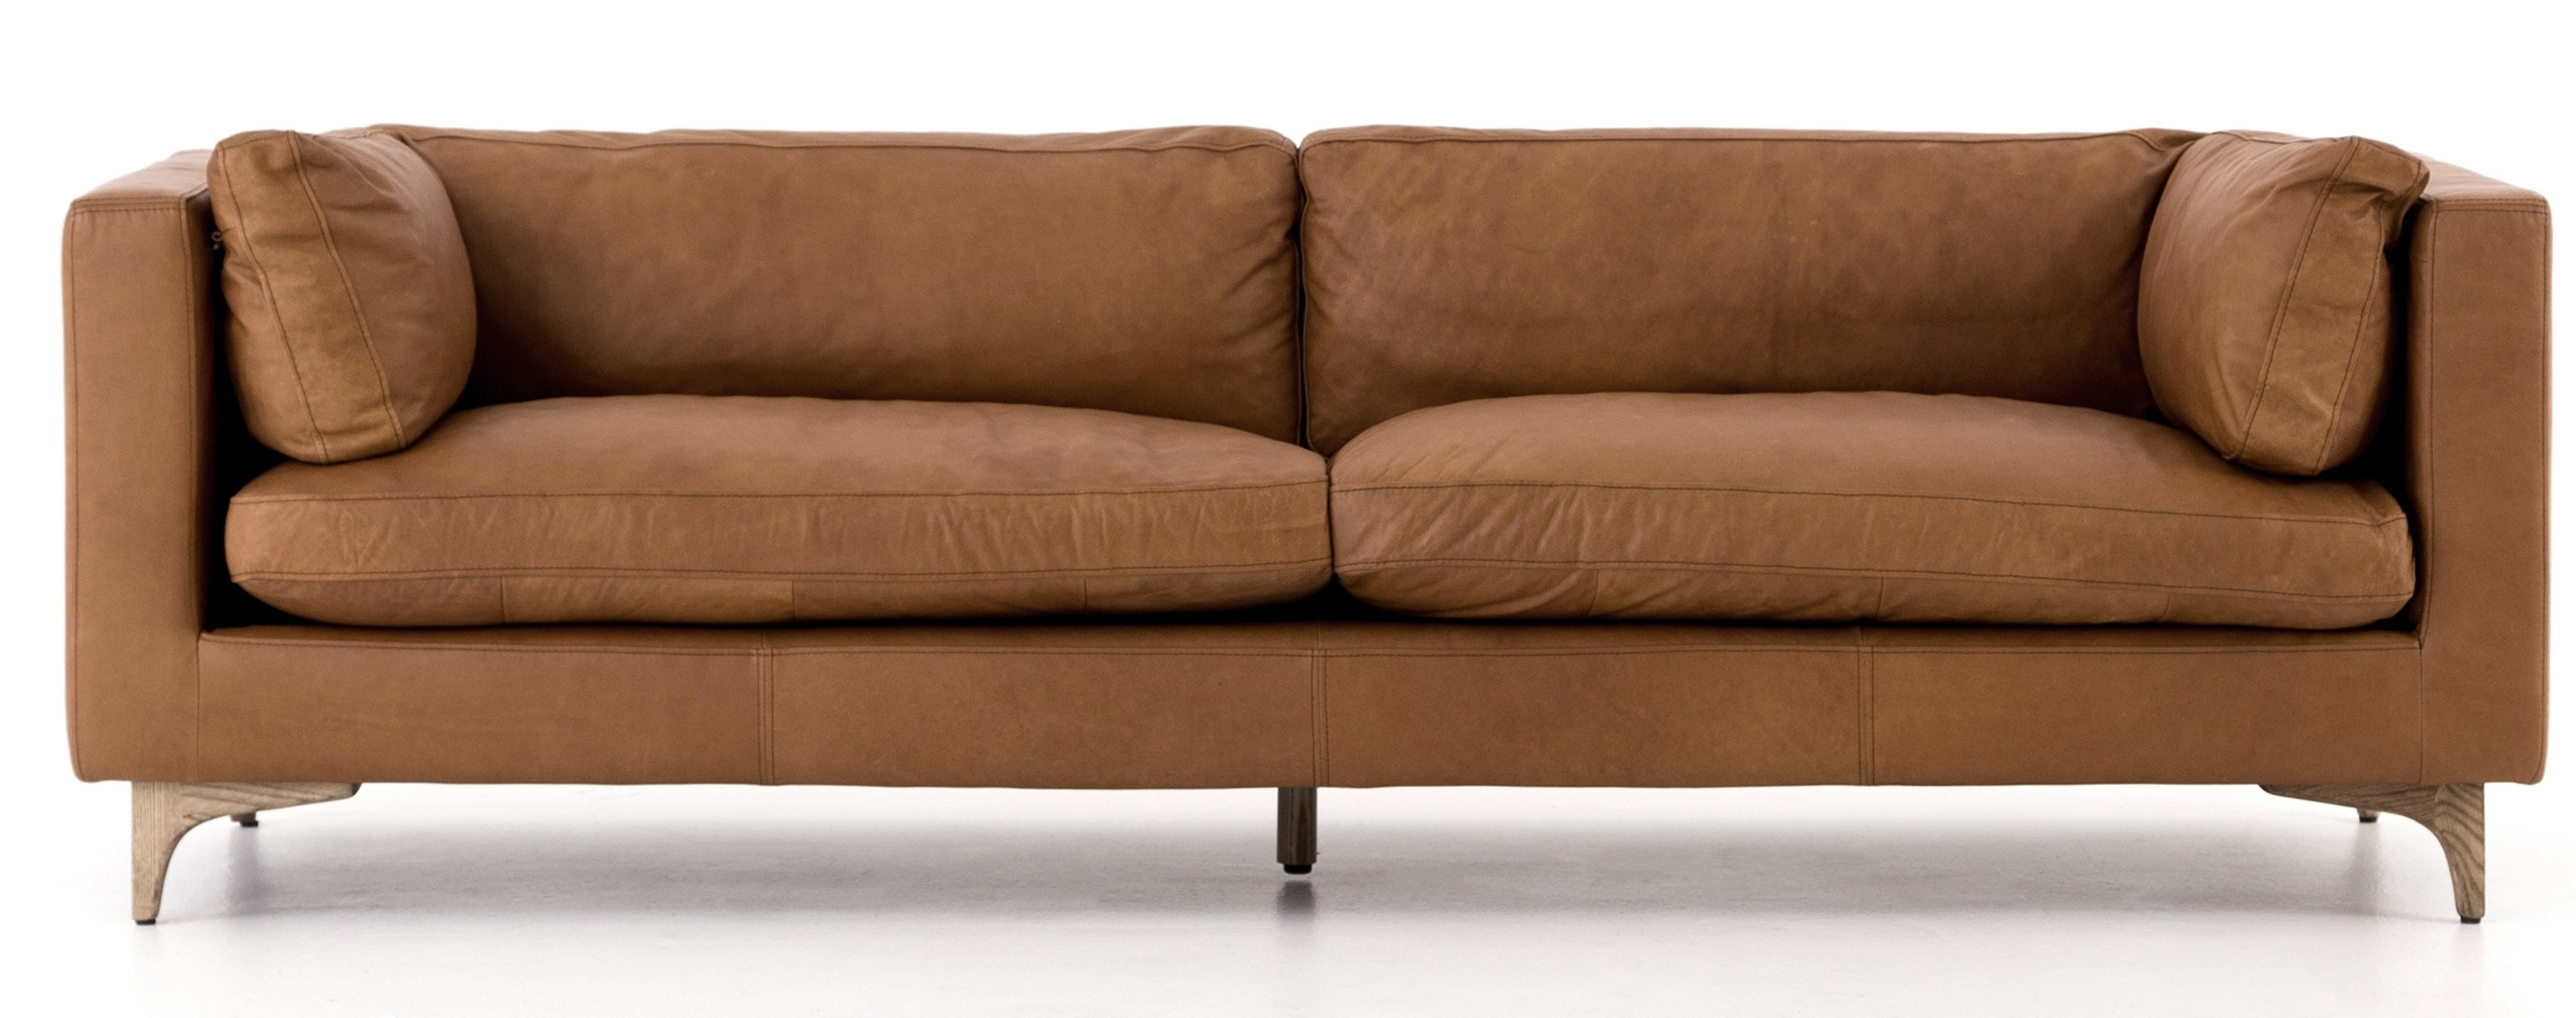 Cognac Sofa | Baci Living Room with Tenny Cognac 2 Piece Left Facing Chaise Sectionals With 2 Headrest (Image 10 of 30)